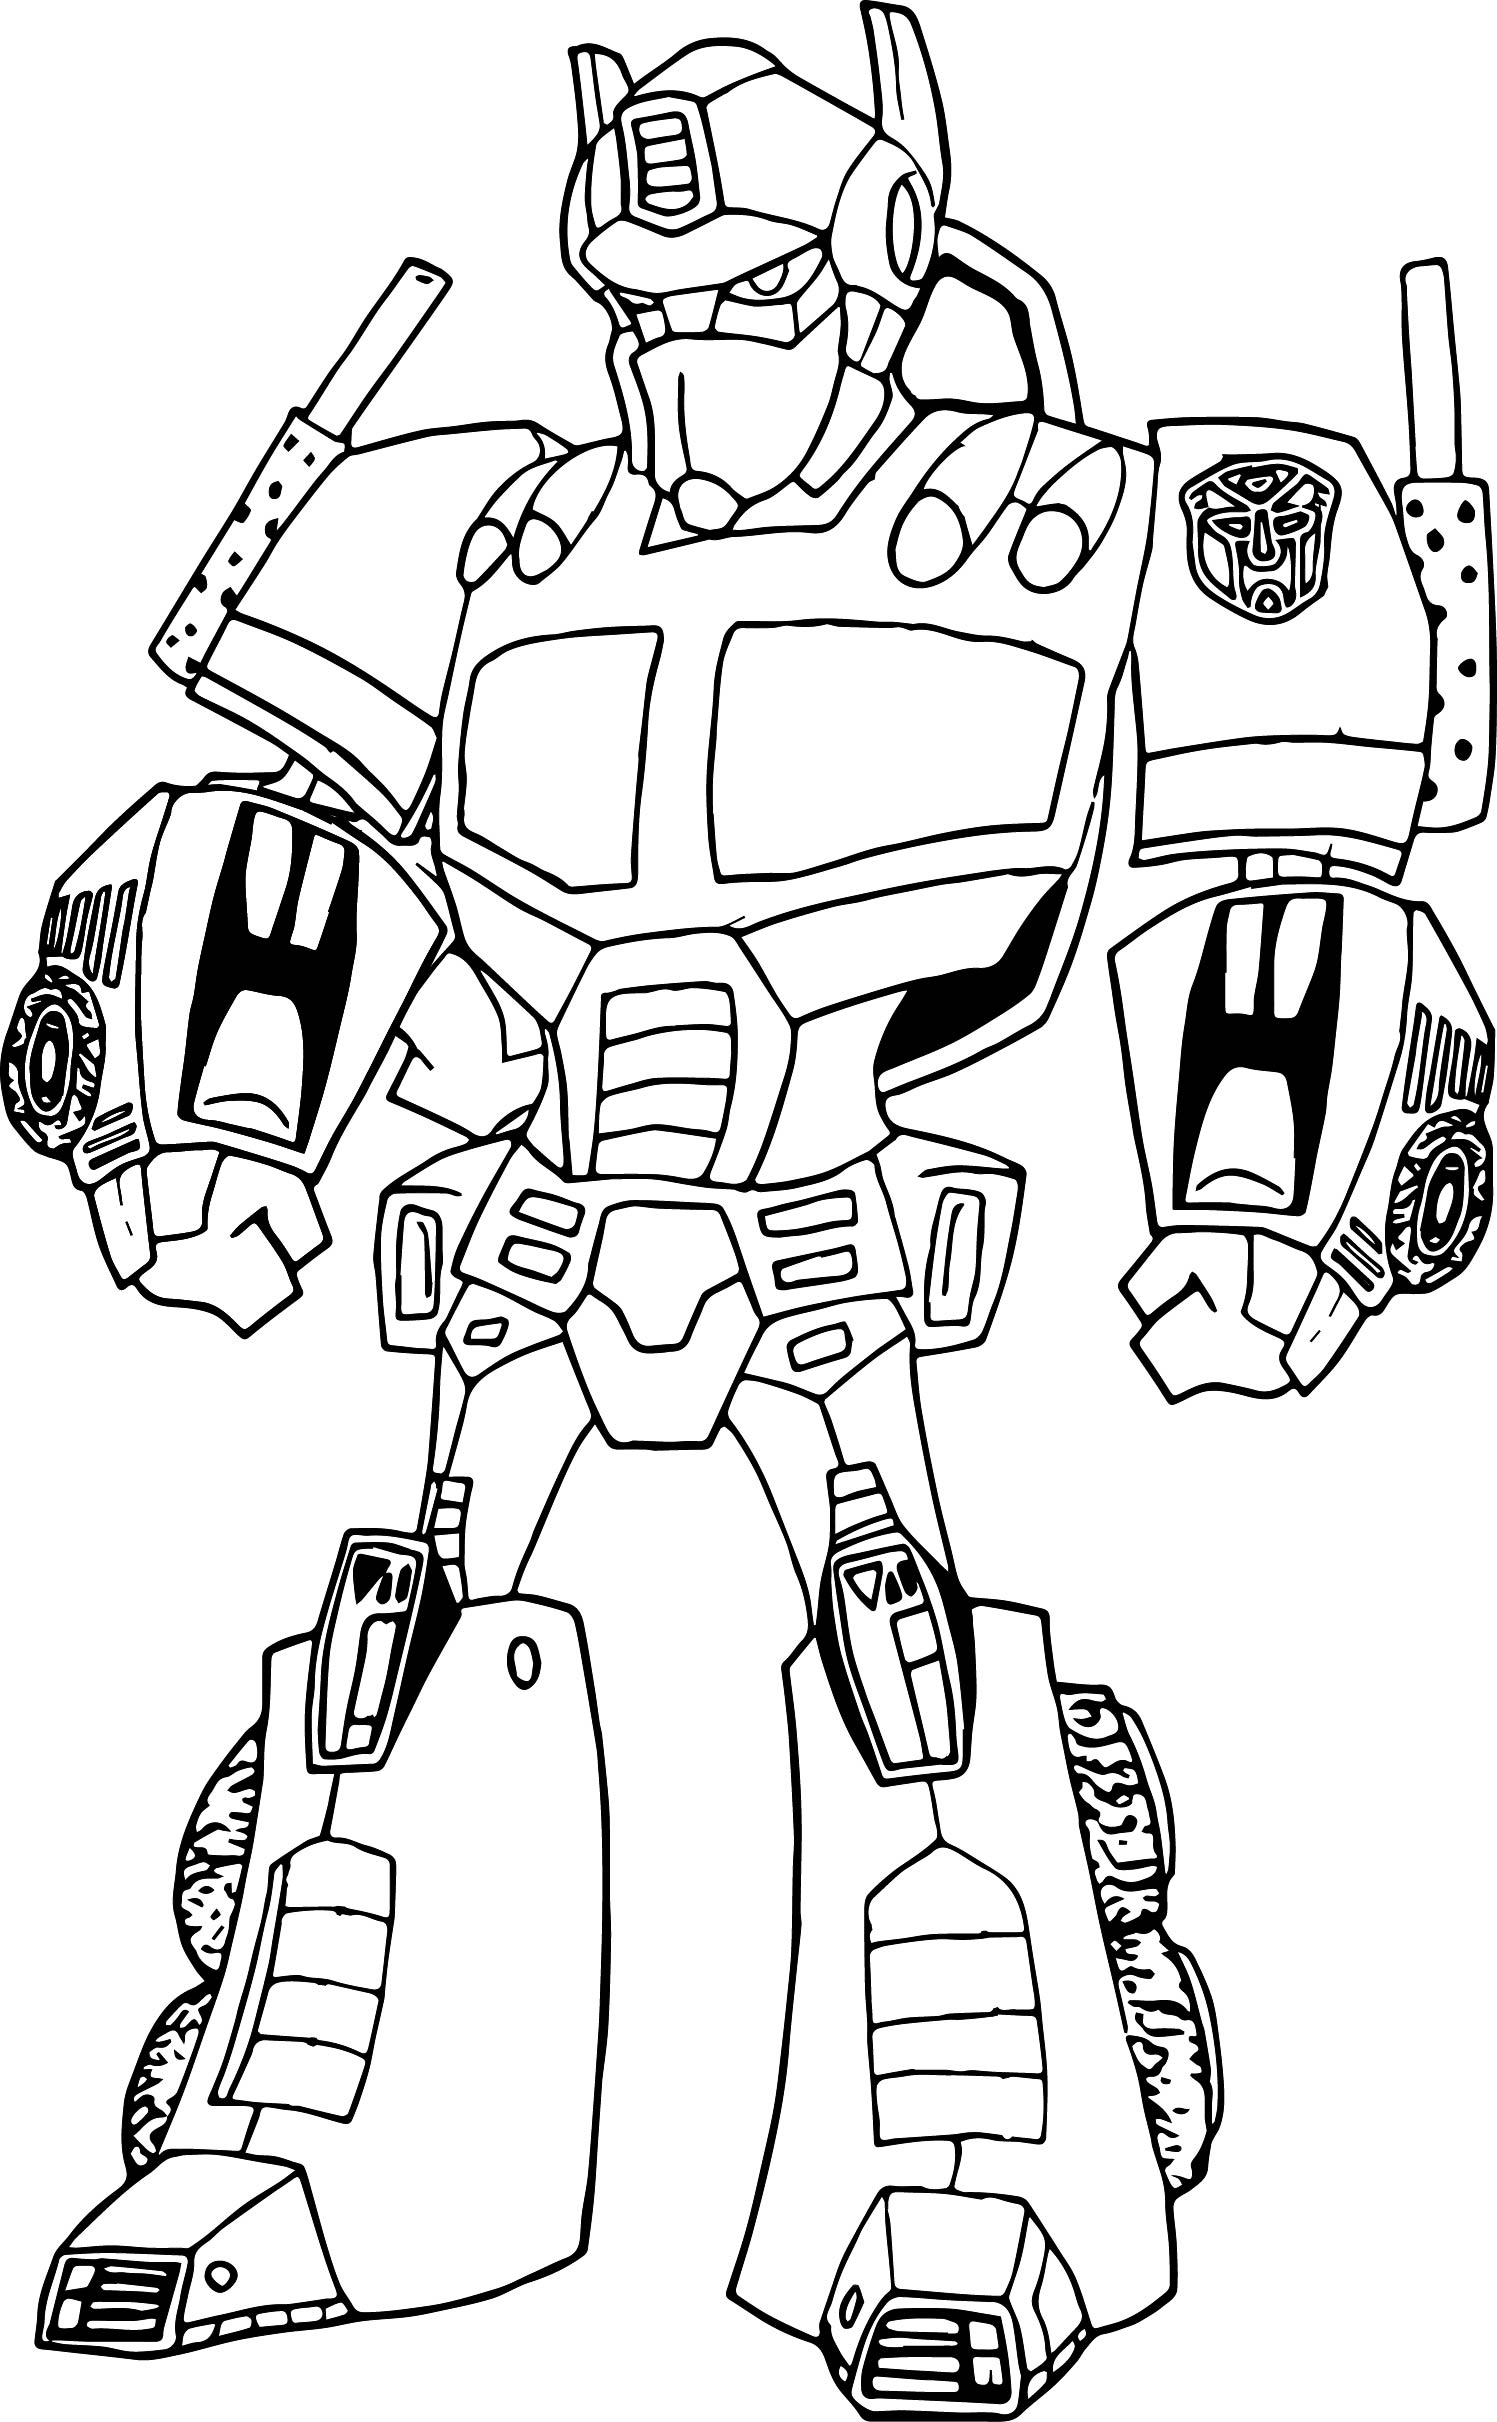 coloring sheet robot coloring pages coloring page robot gamma coloring robot coloring sheet pages